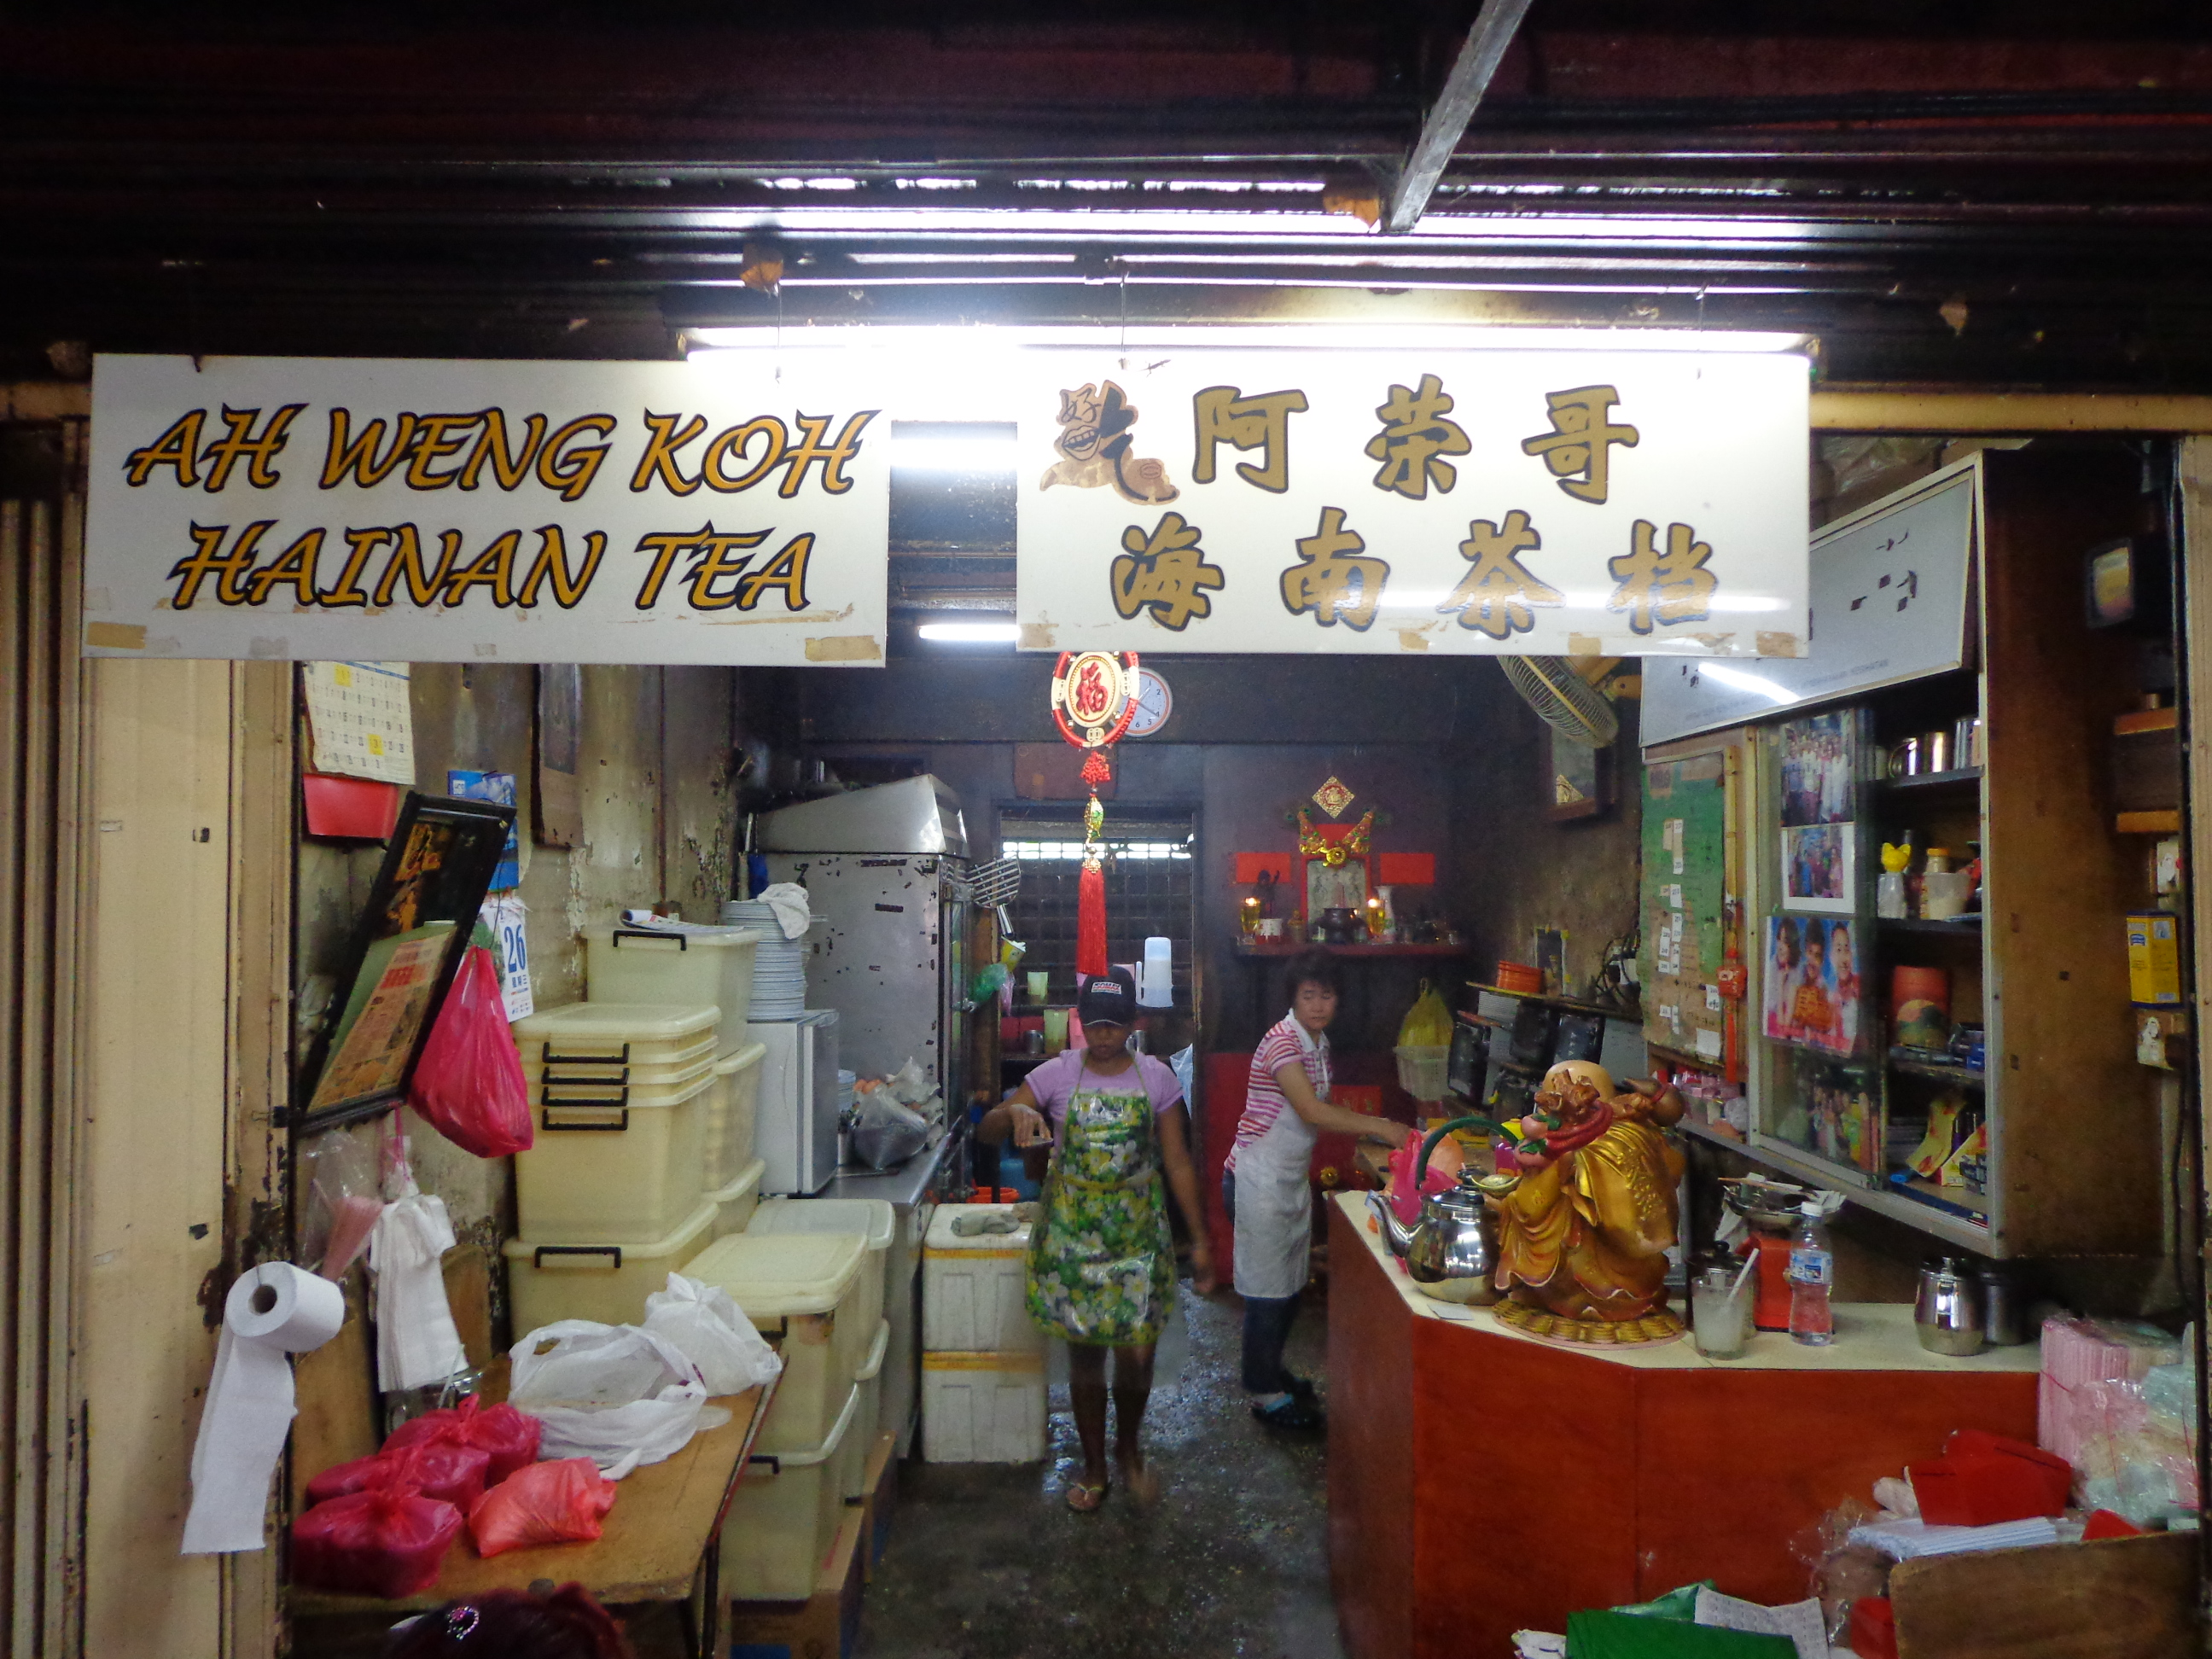 Mustgo Places to Eat in KL  Recommended by a Smart Local